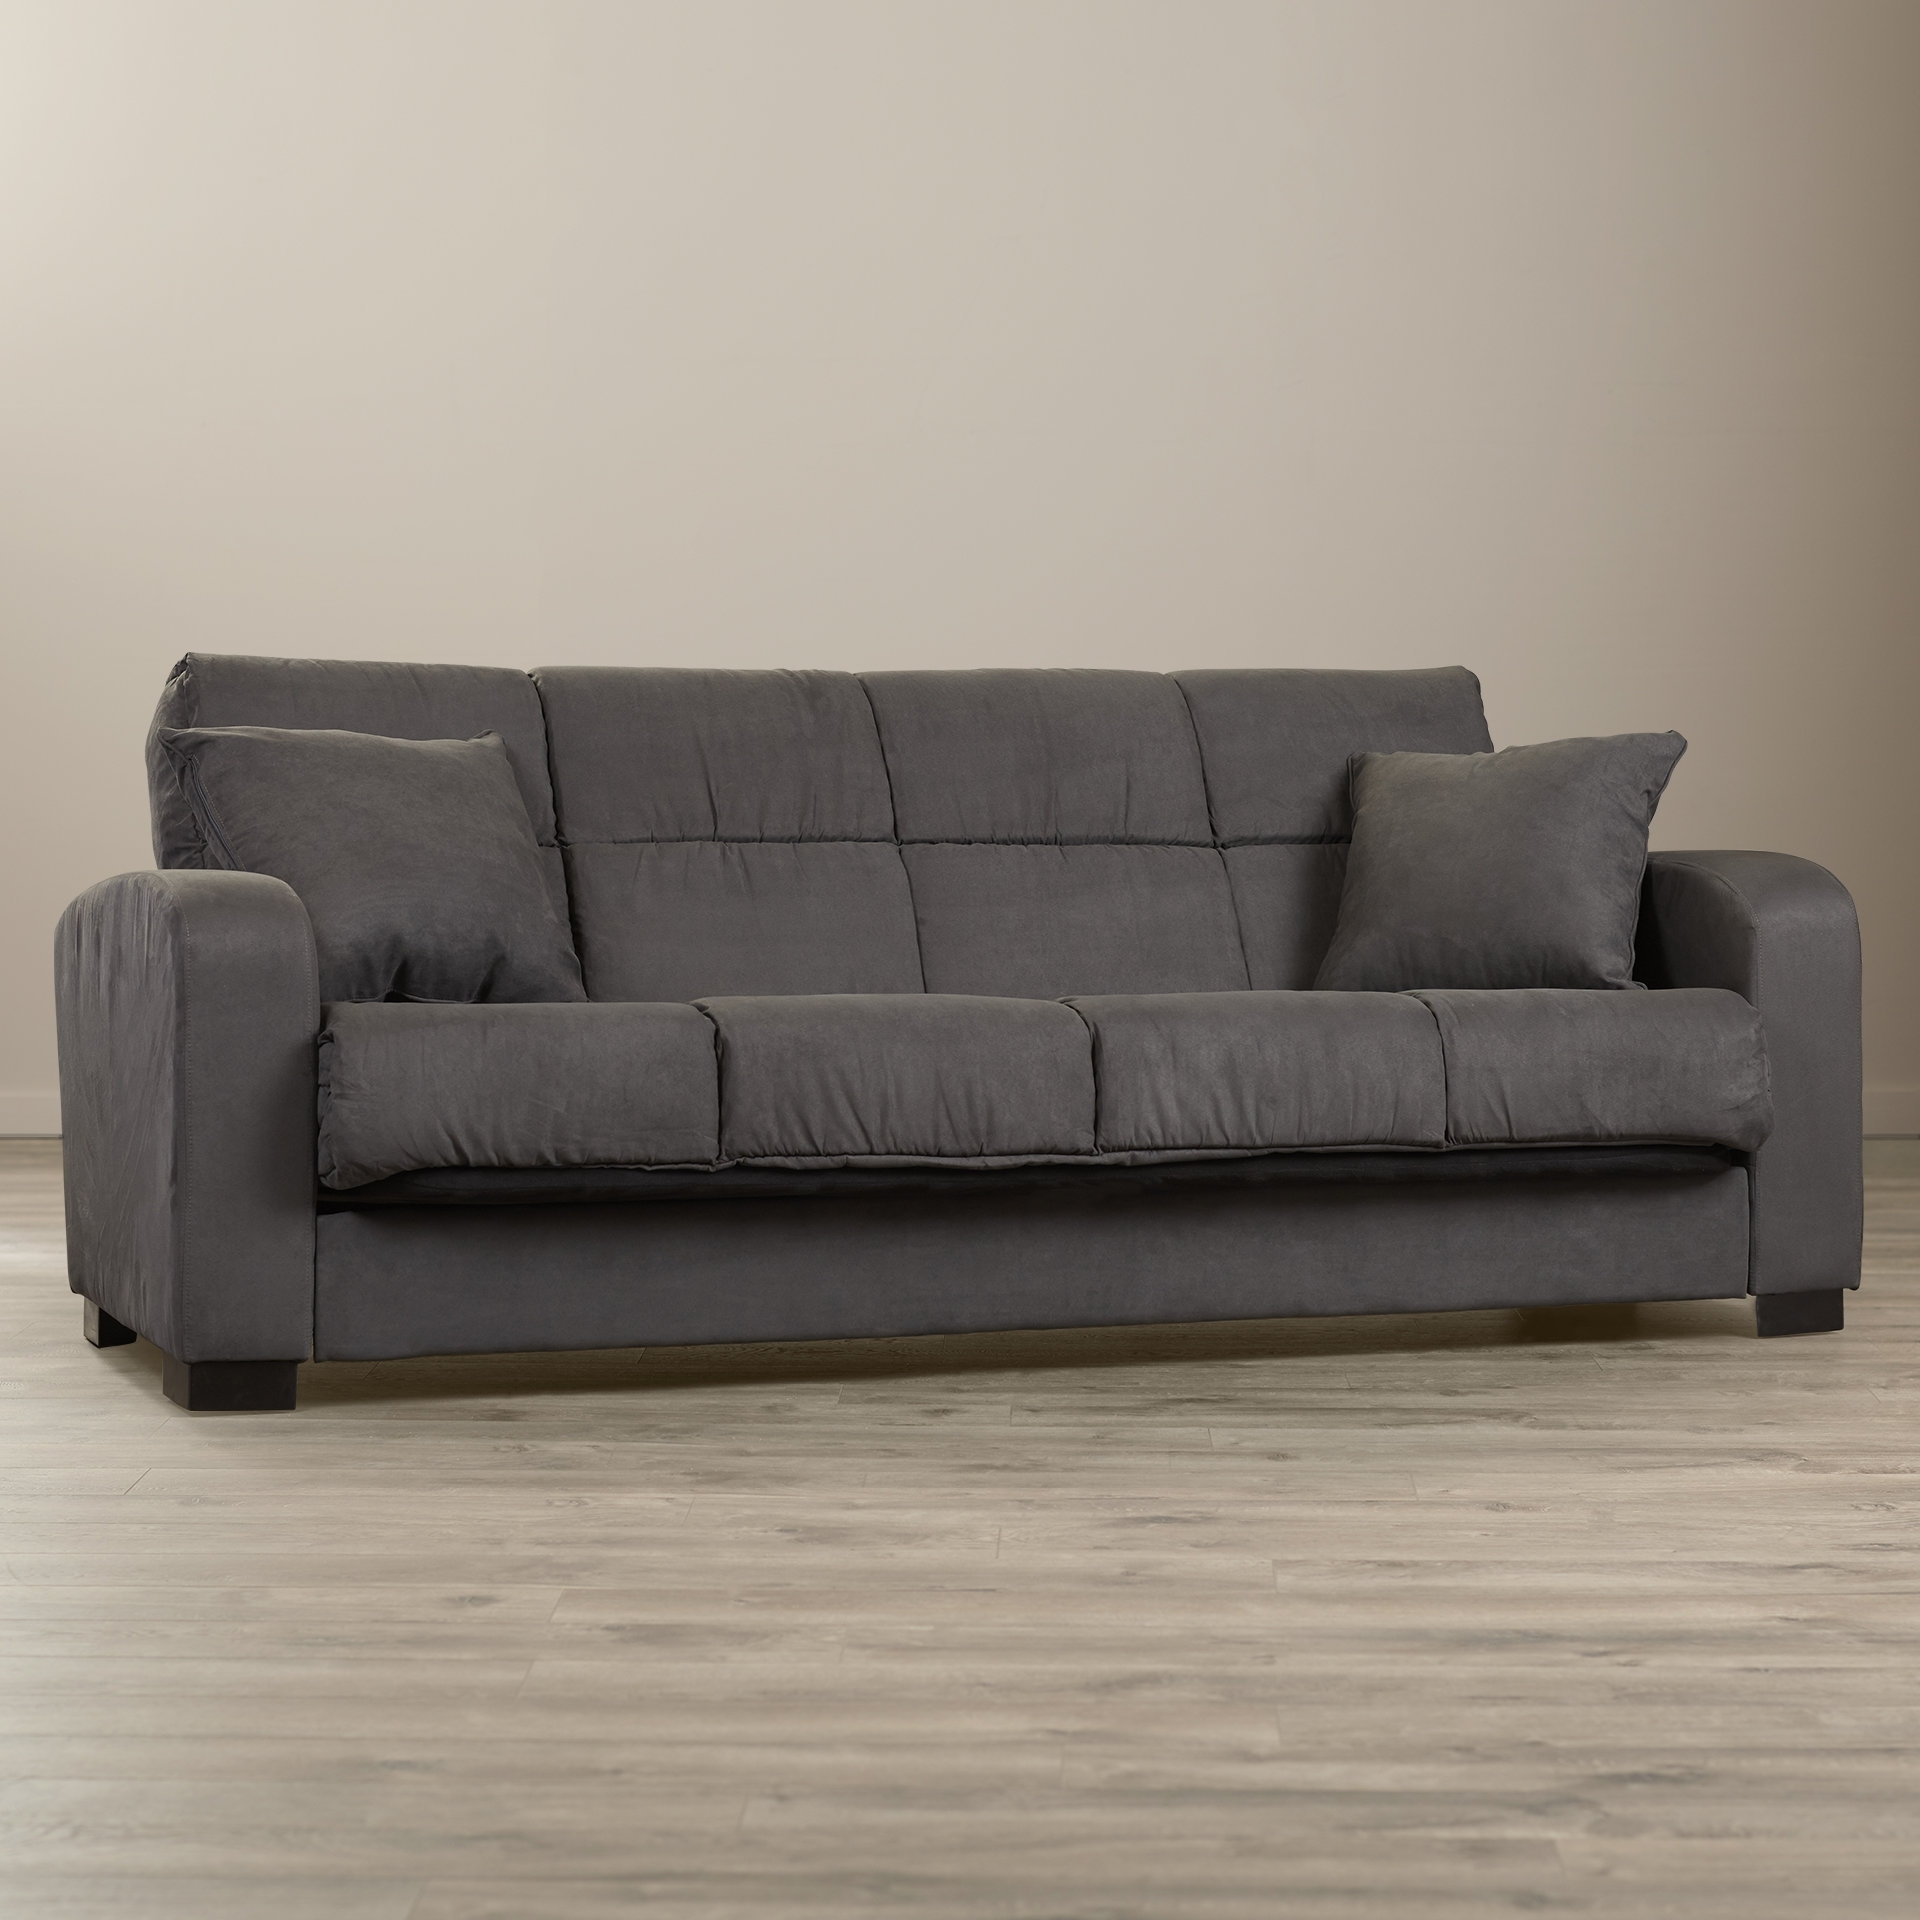 Charming Widely Used Sofa : Serta Rudolpho Convertible Sleeper Sofa Jennifer With  Regard To Seattle Sectional Sofas